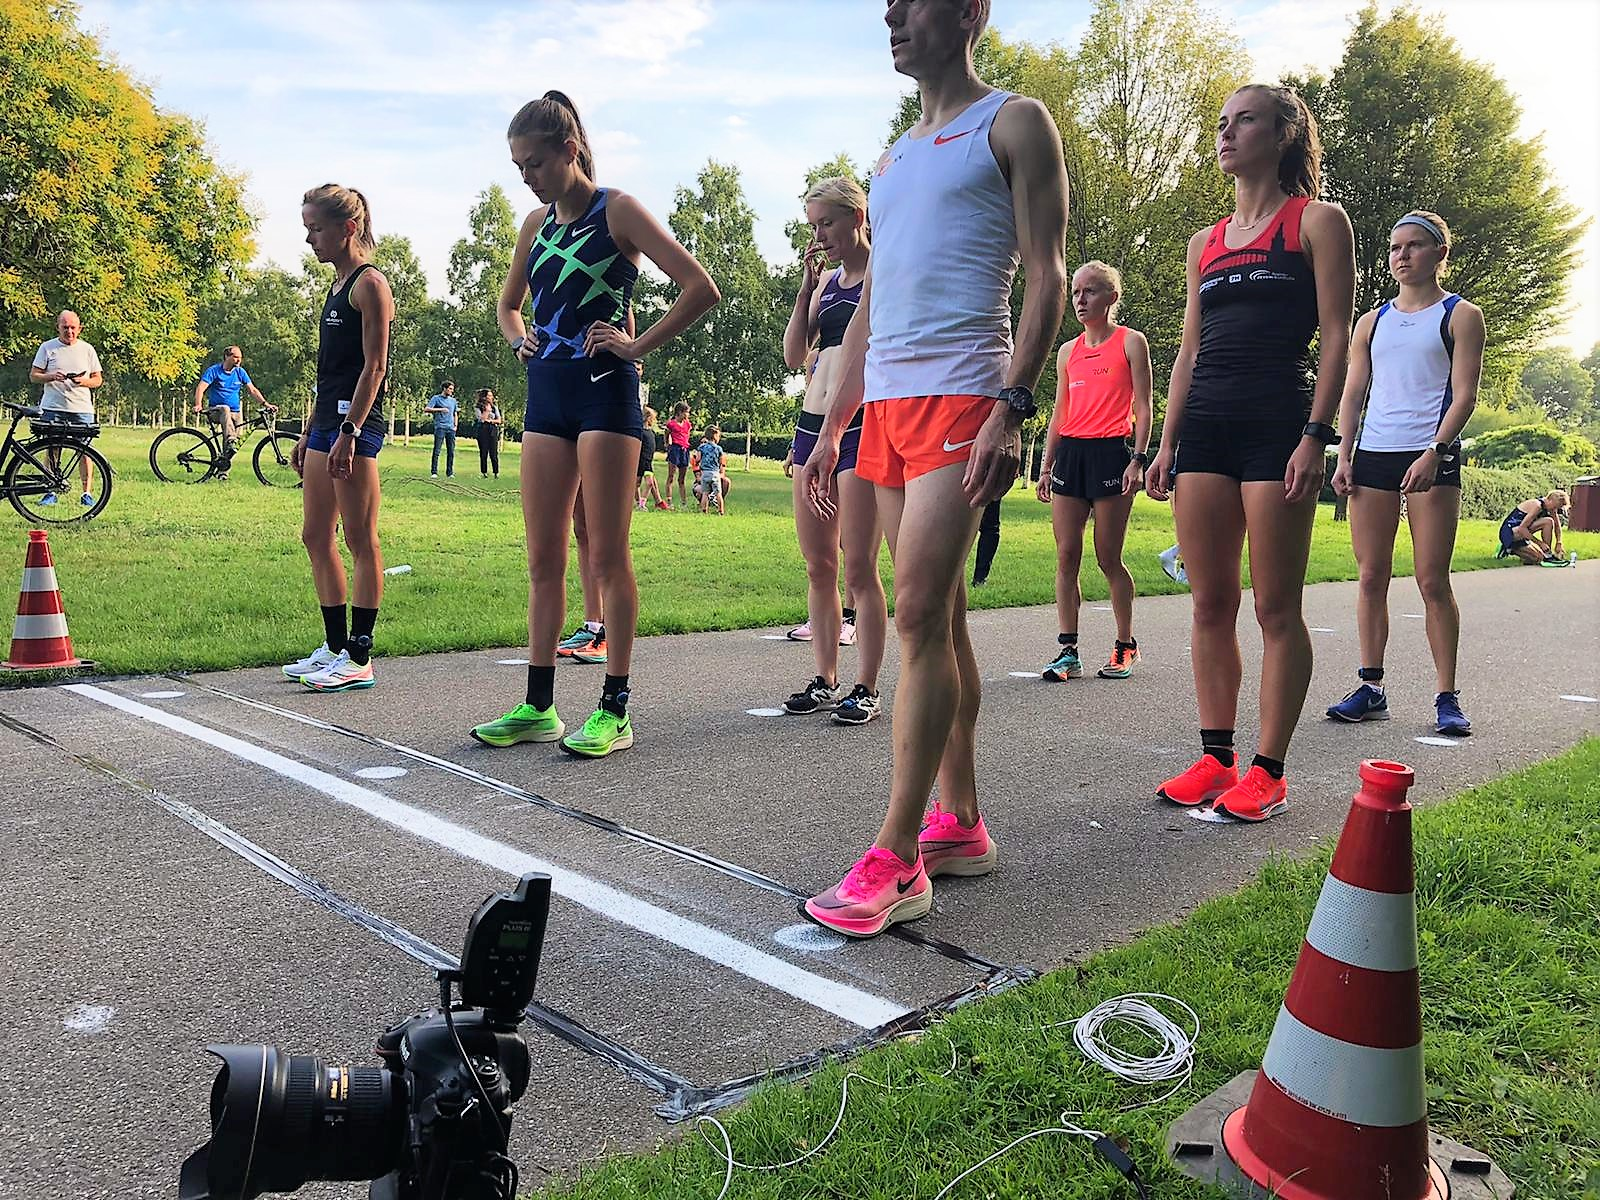 4 National Records at first timed 5K race 3